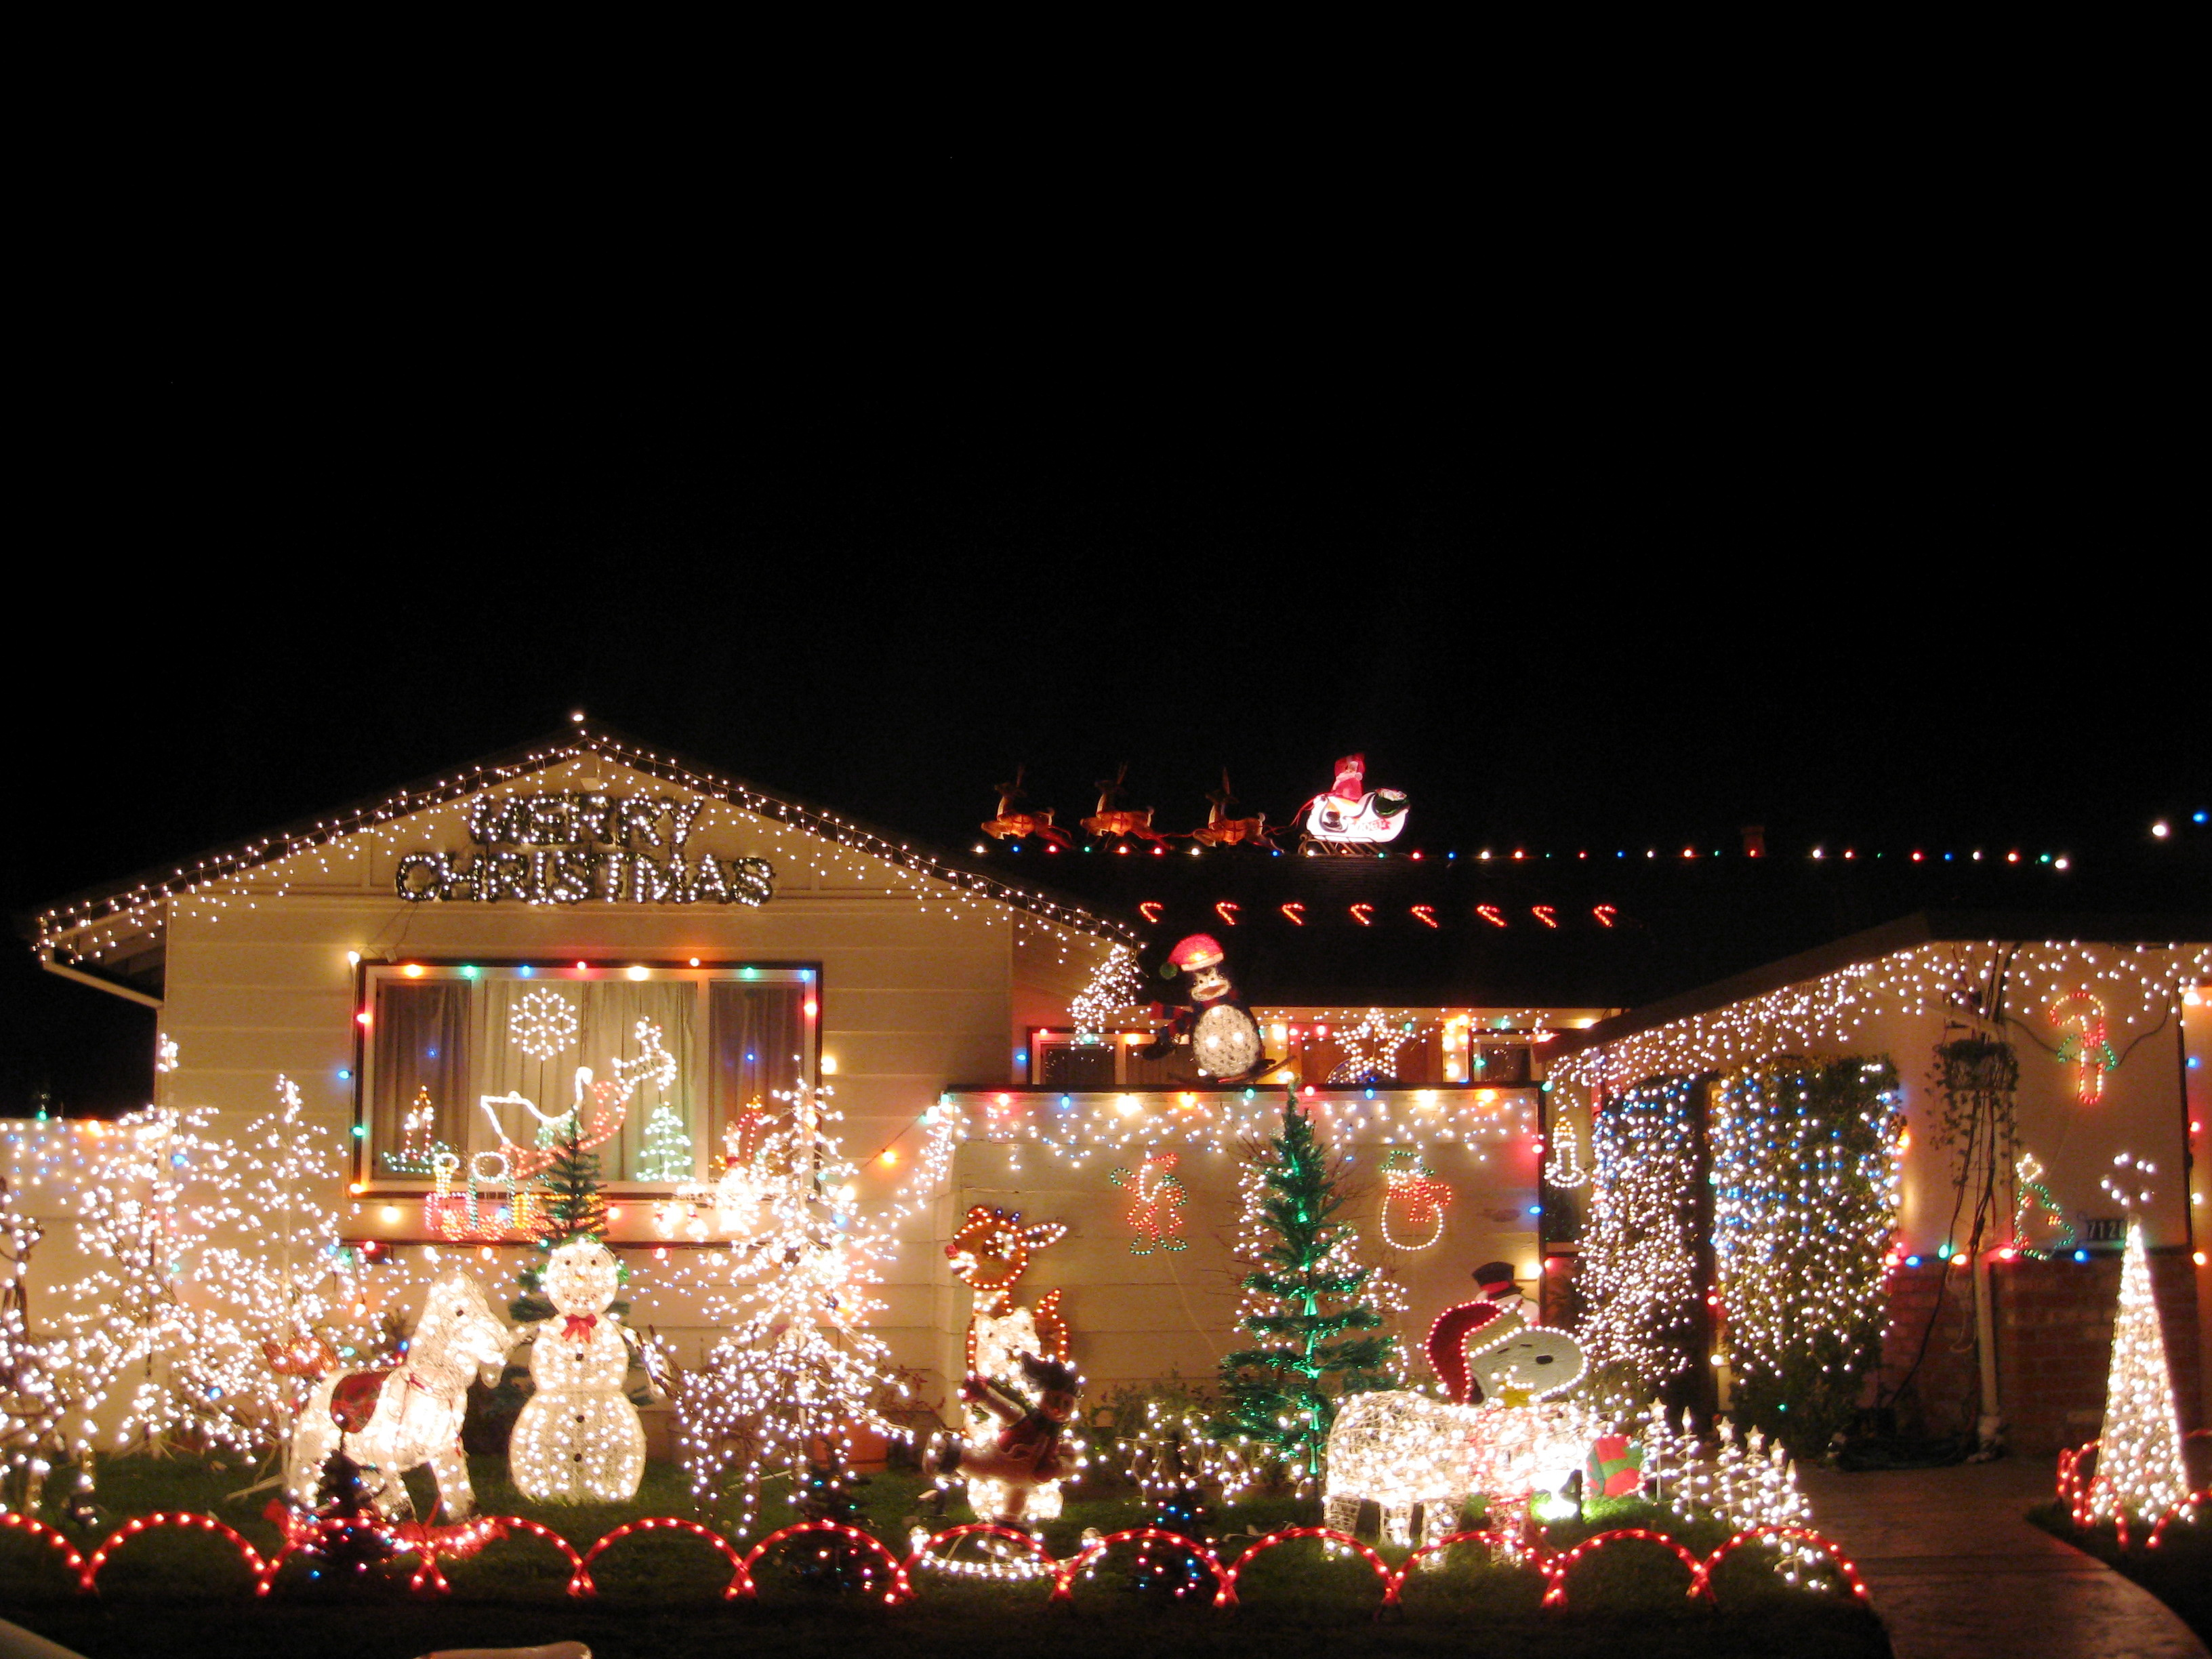 Why I'm Looking Forward to Christmas at Home